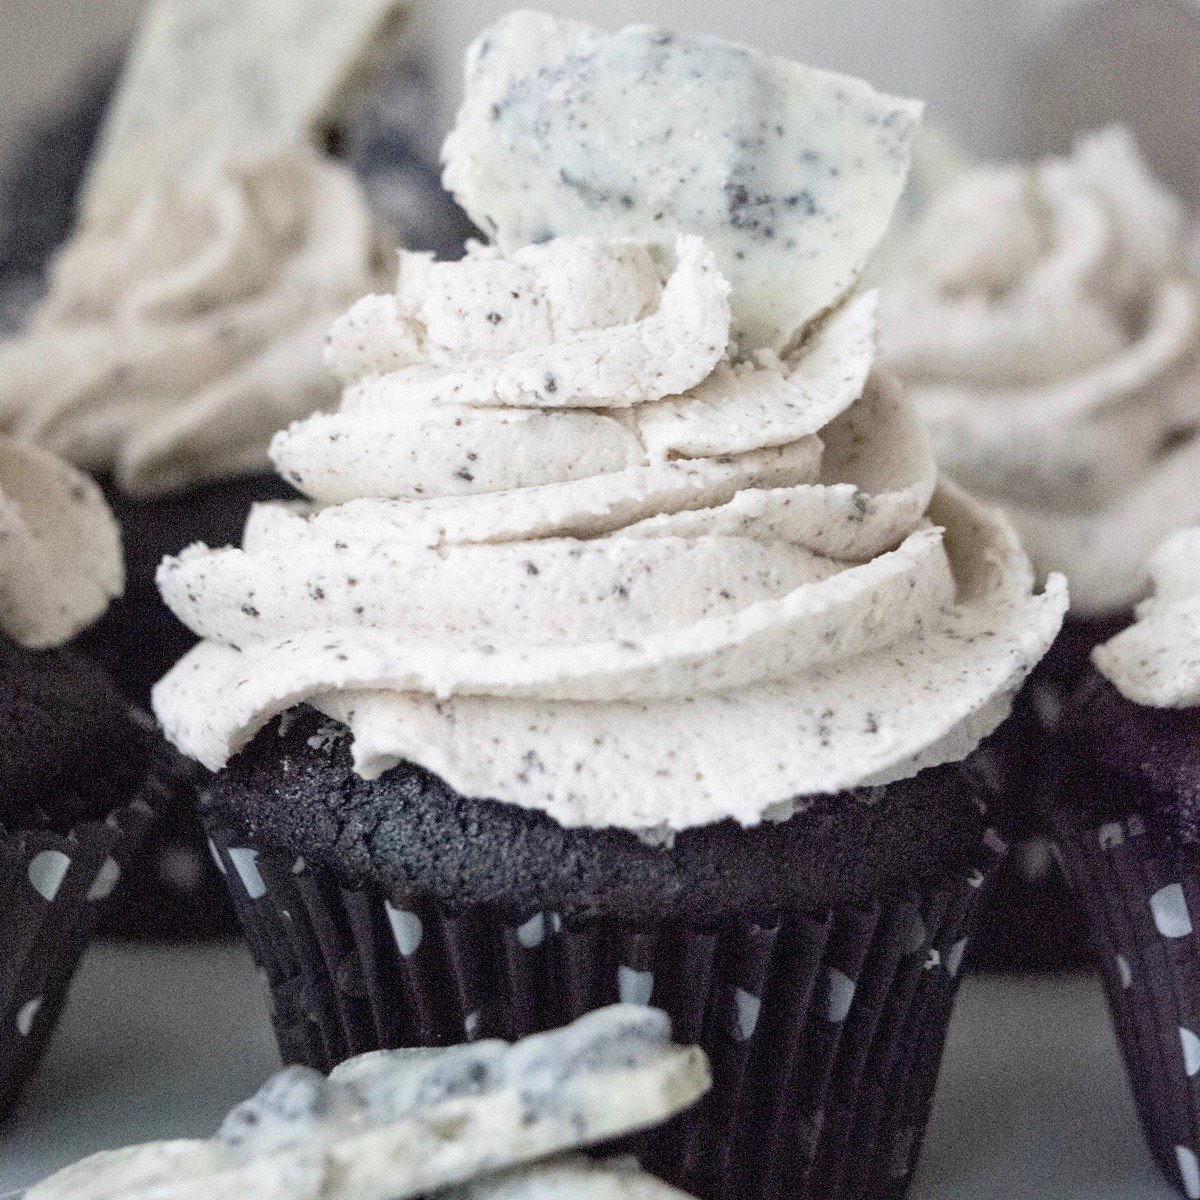 Decadent Dark Chocolate Cupcakes with a Rich Cookie Bark Frosting